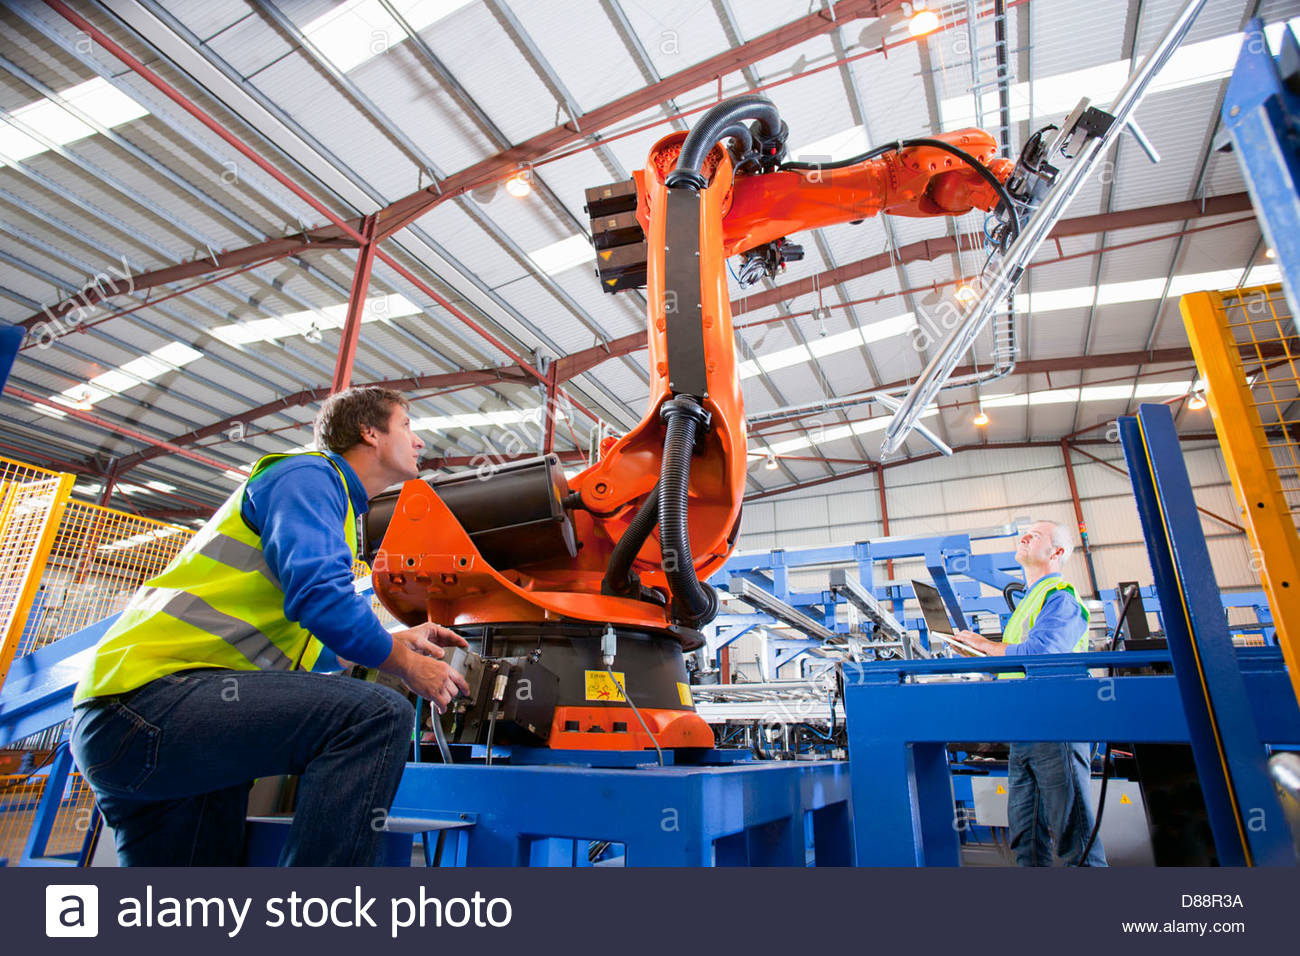 Technician controlling robotic machinery lifting steel fencing on production line in manufacturing plant - Stock Image